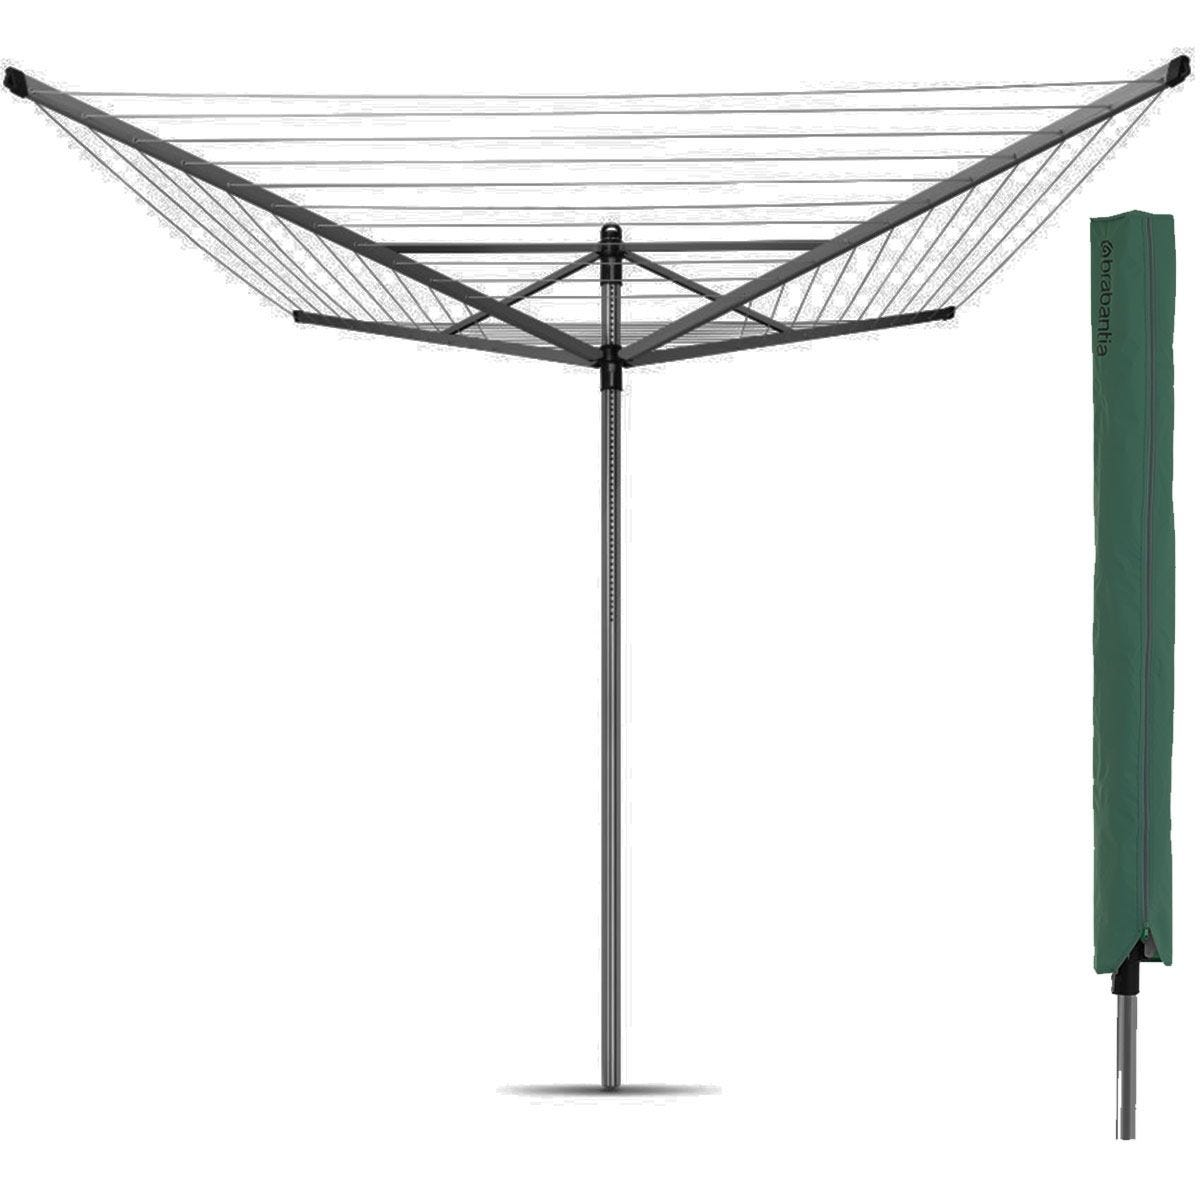 Brabantia Lift-O-Matic 60m 4-Arm Rotary Airer with Cover